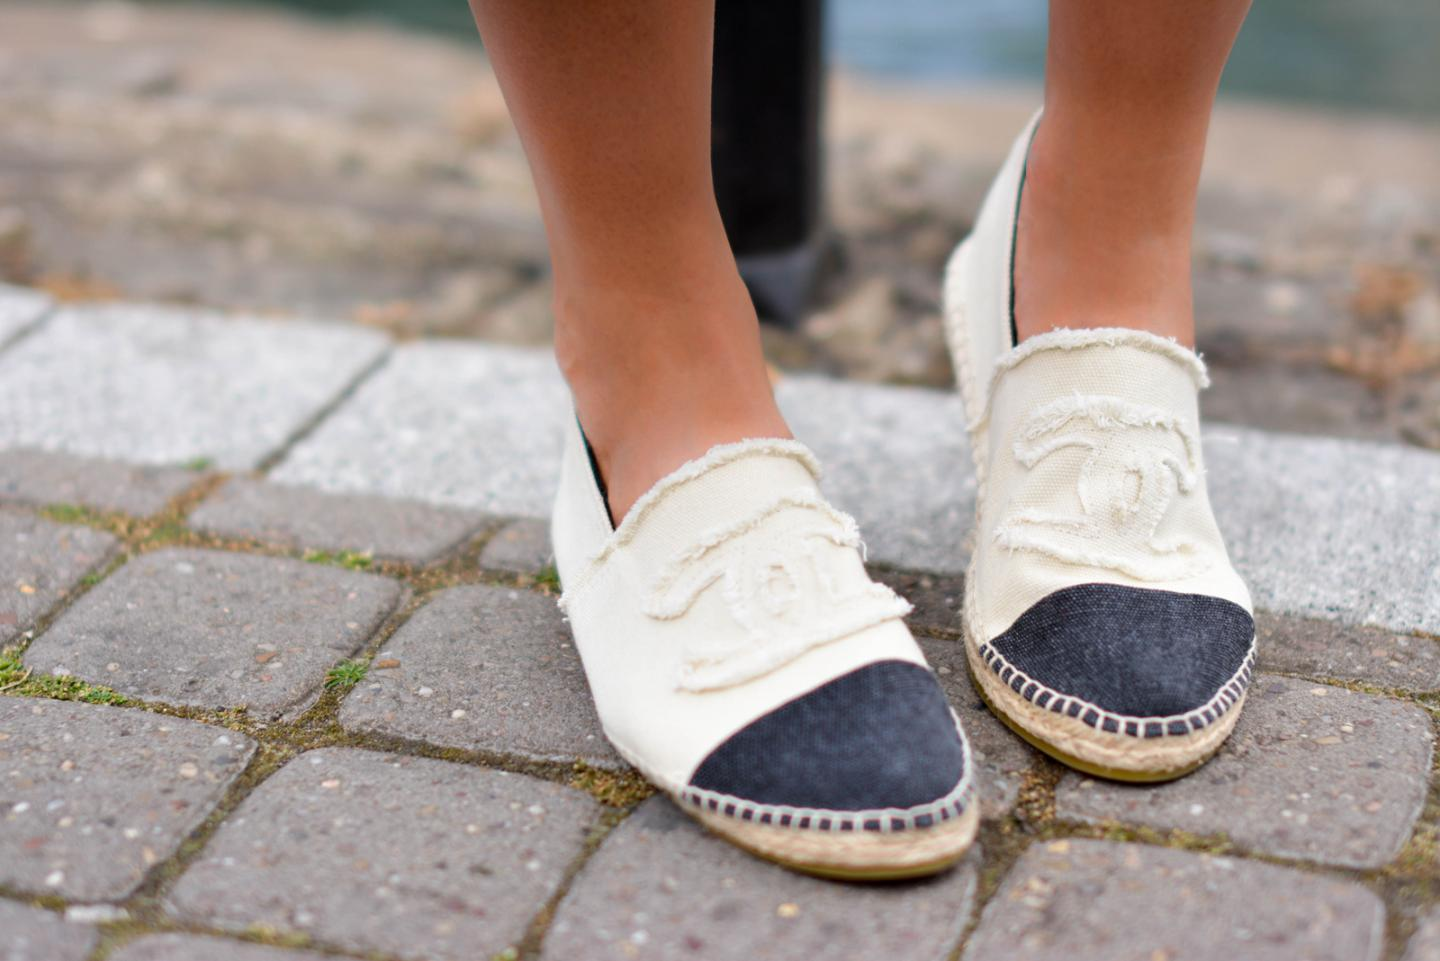 EJSTYLE - Chanel canvas espadrilles